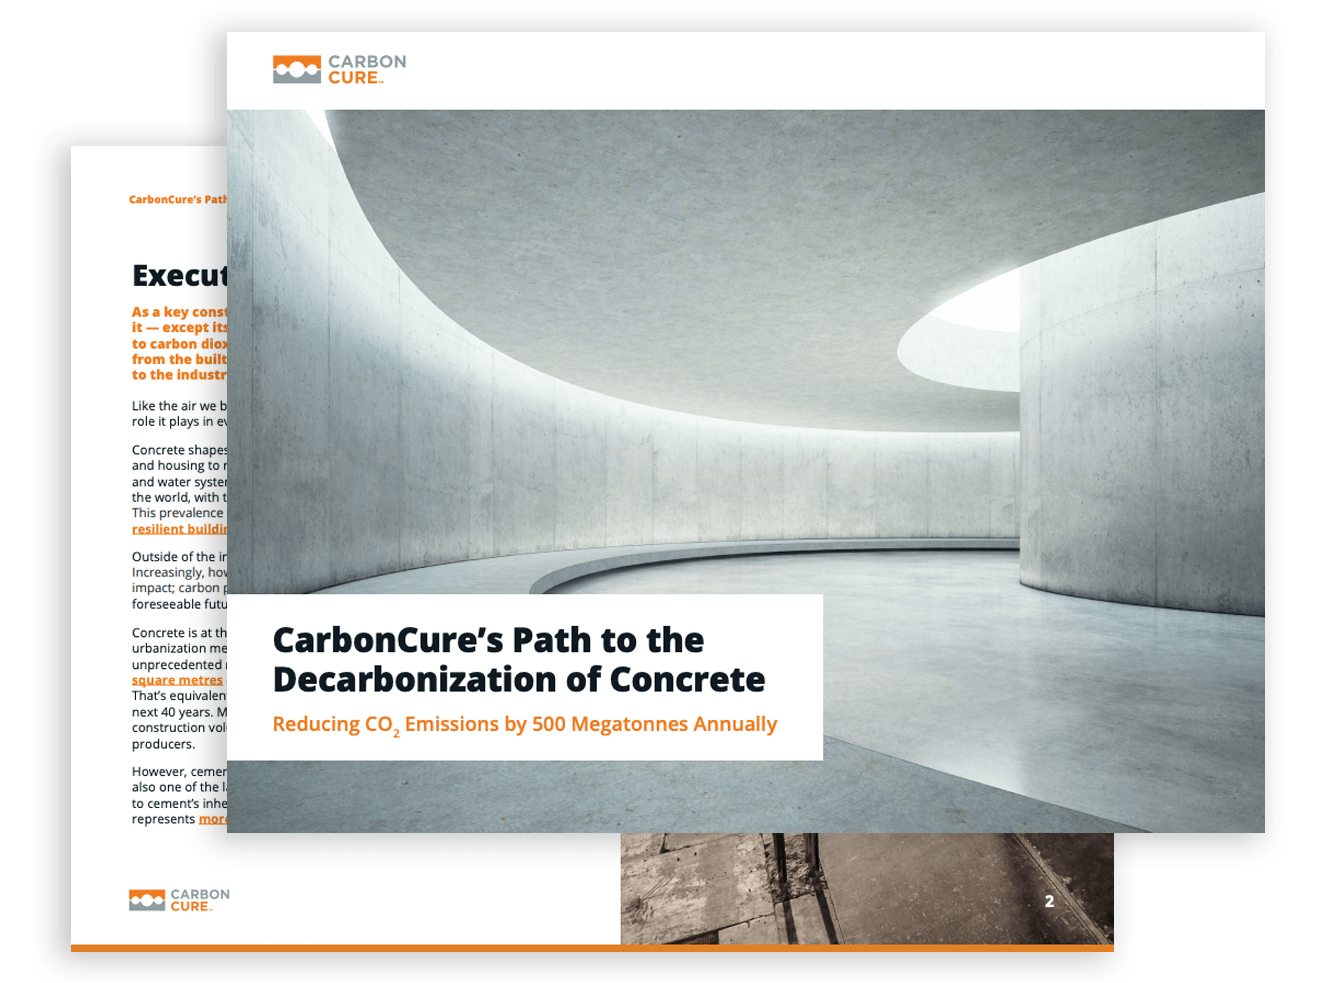 CarbonCure's Path to the Decarbonization of Concrete